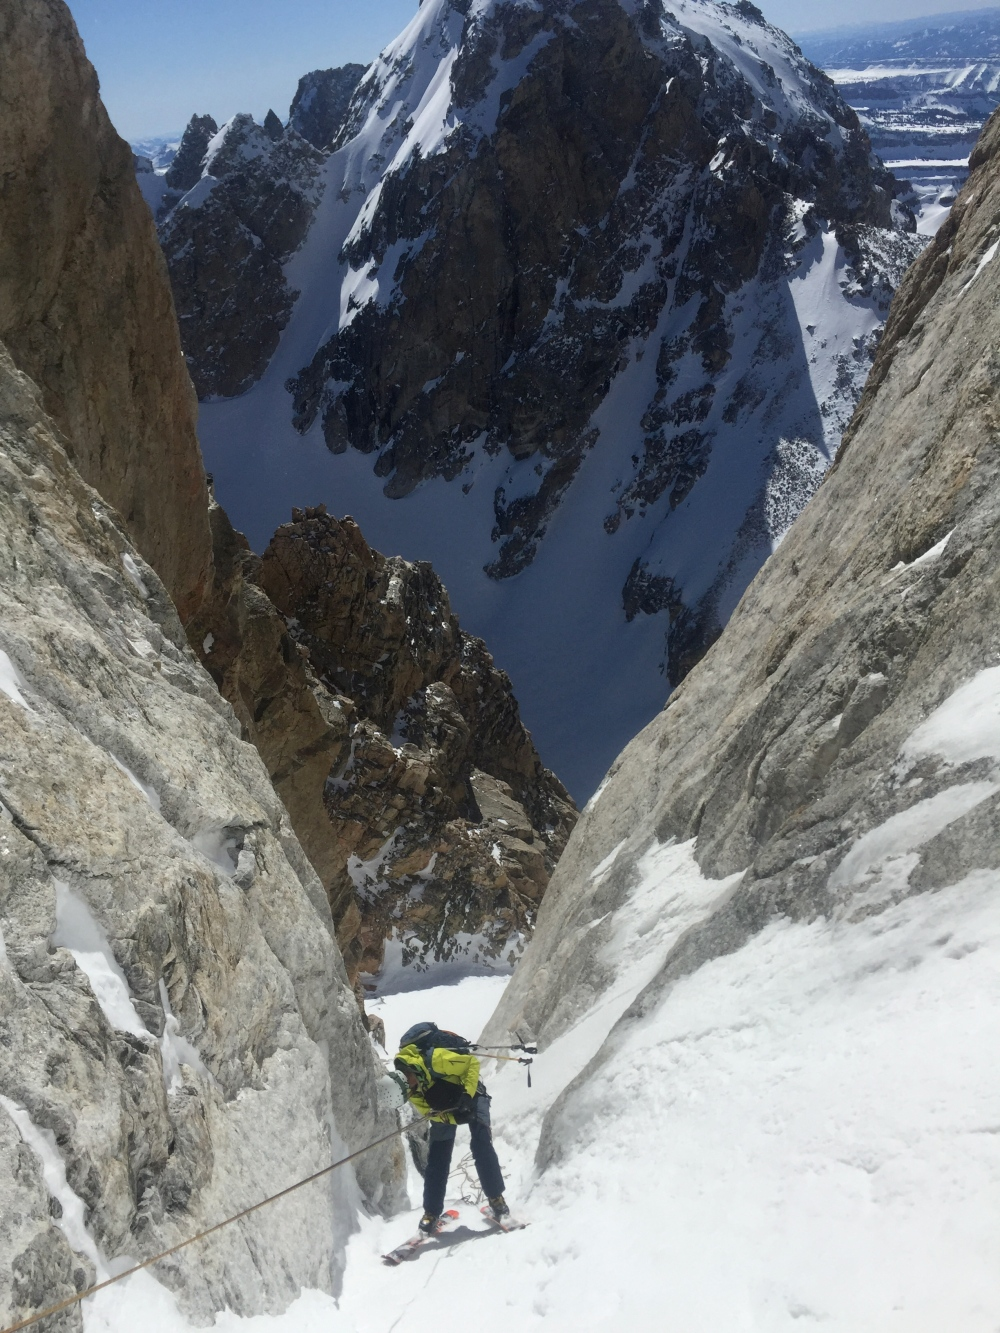 Tanner Flanagan Rapping the Last Pitch of the Chevy Couloir.